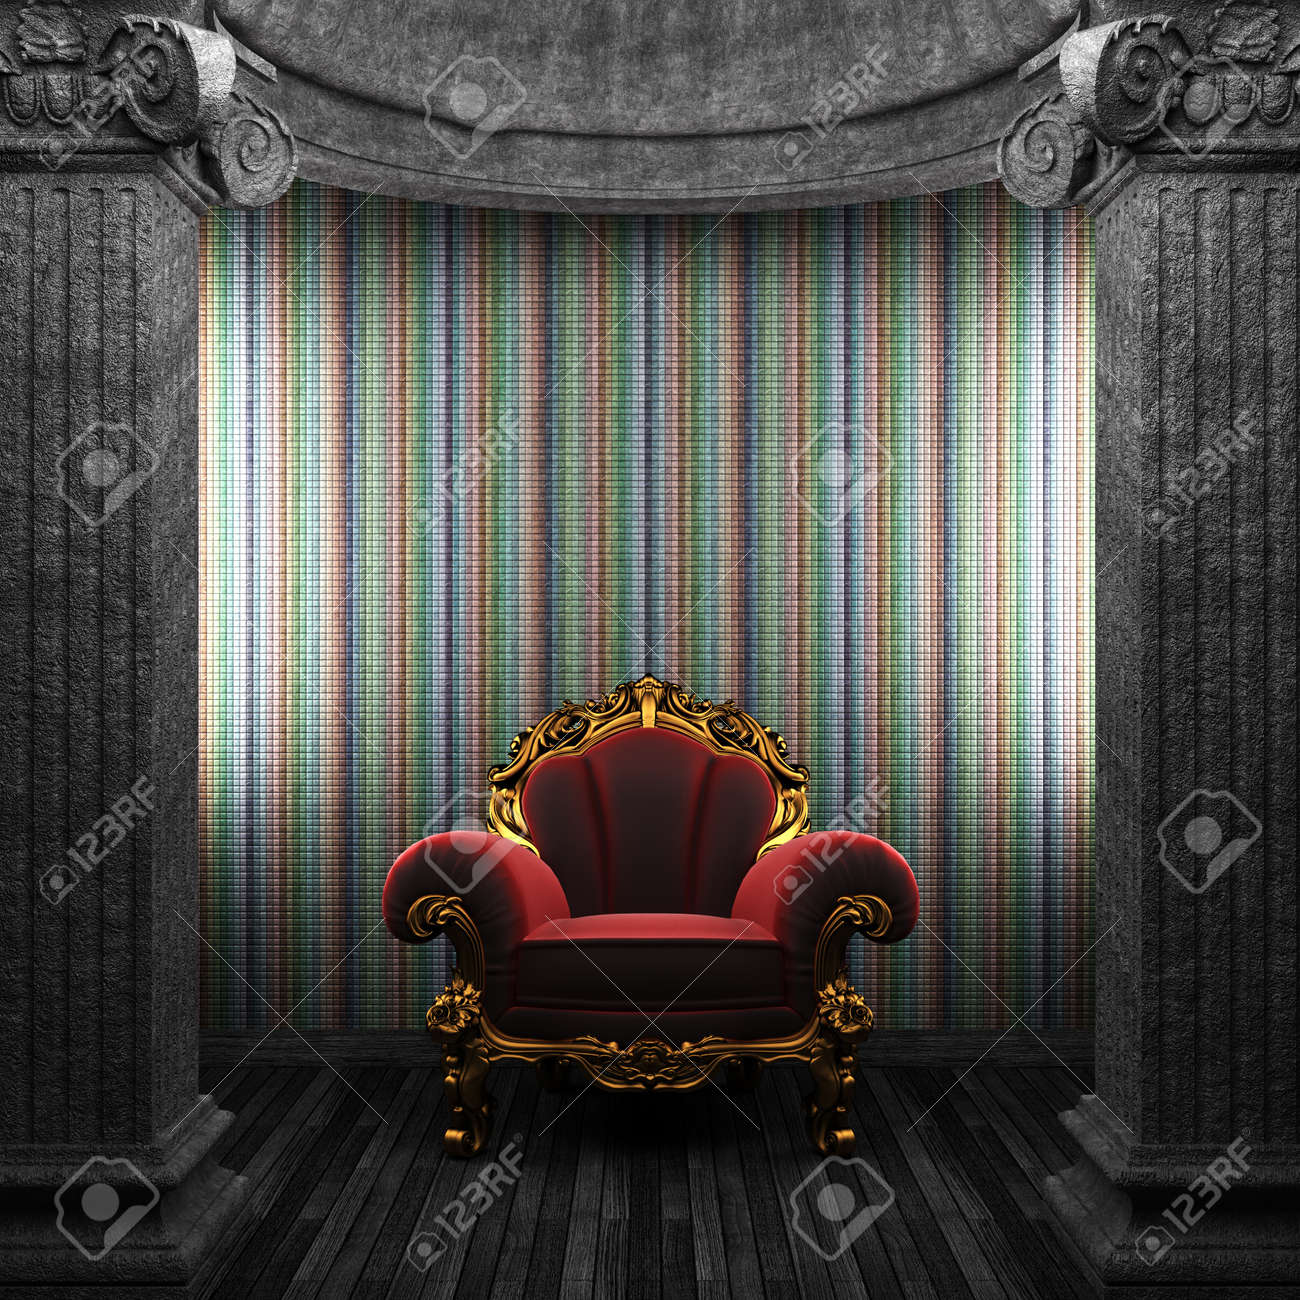 stone columns, chair and wallpaper made in 3D Stock Photo - 8482555